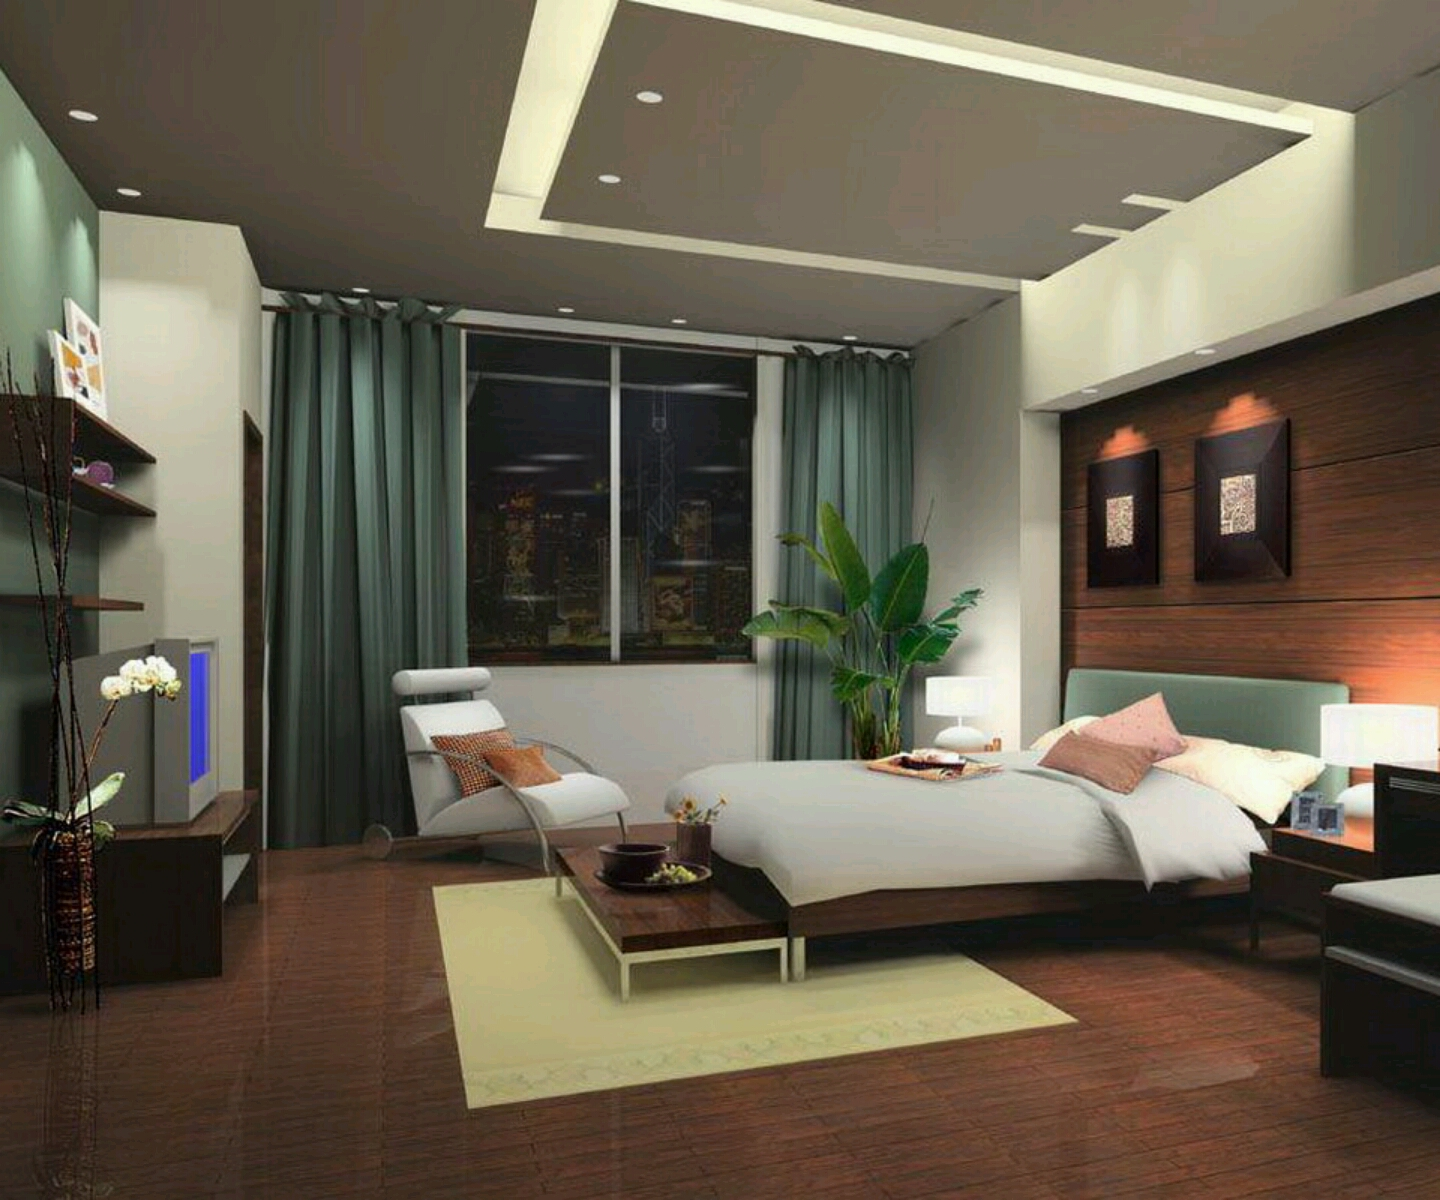 New home designs latest modern bedrooms designs best ideas for Bedroom room decor ideas